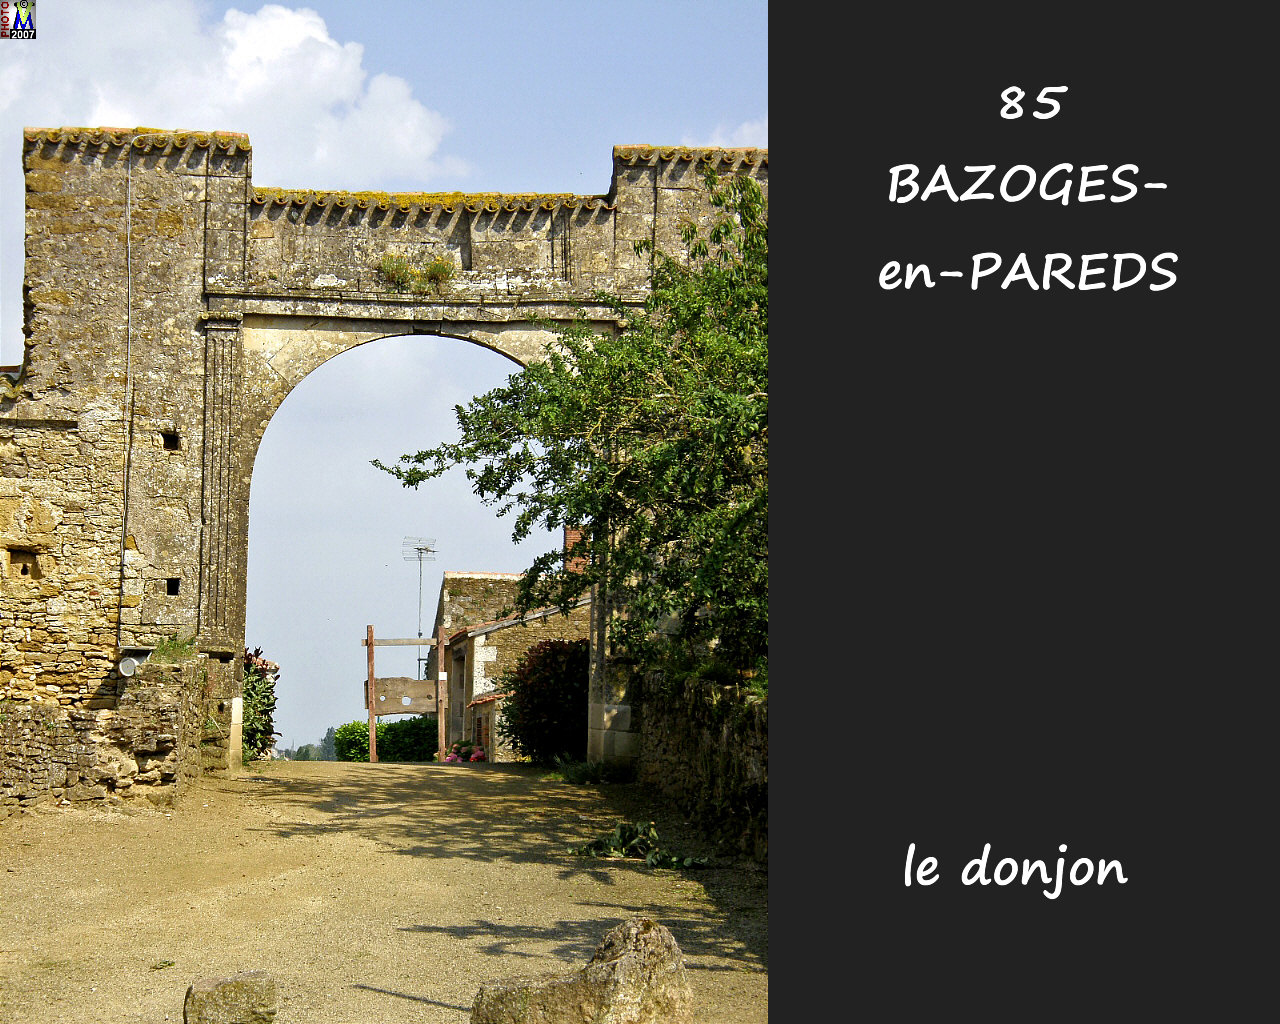 85BAZOGES-PAREDS_donjon_122.jpg